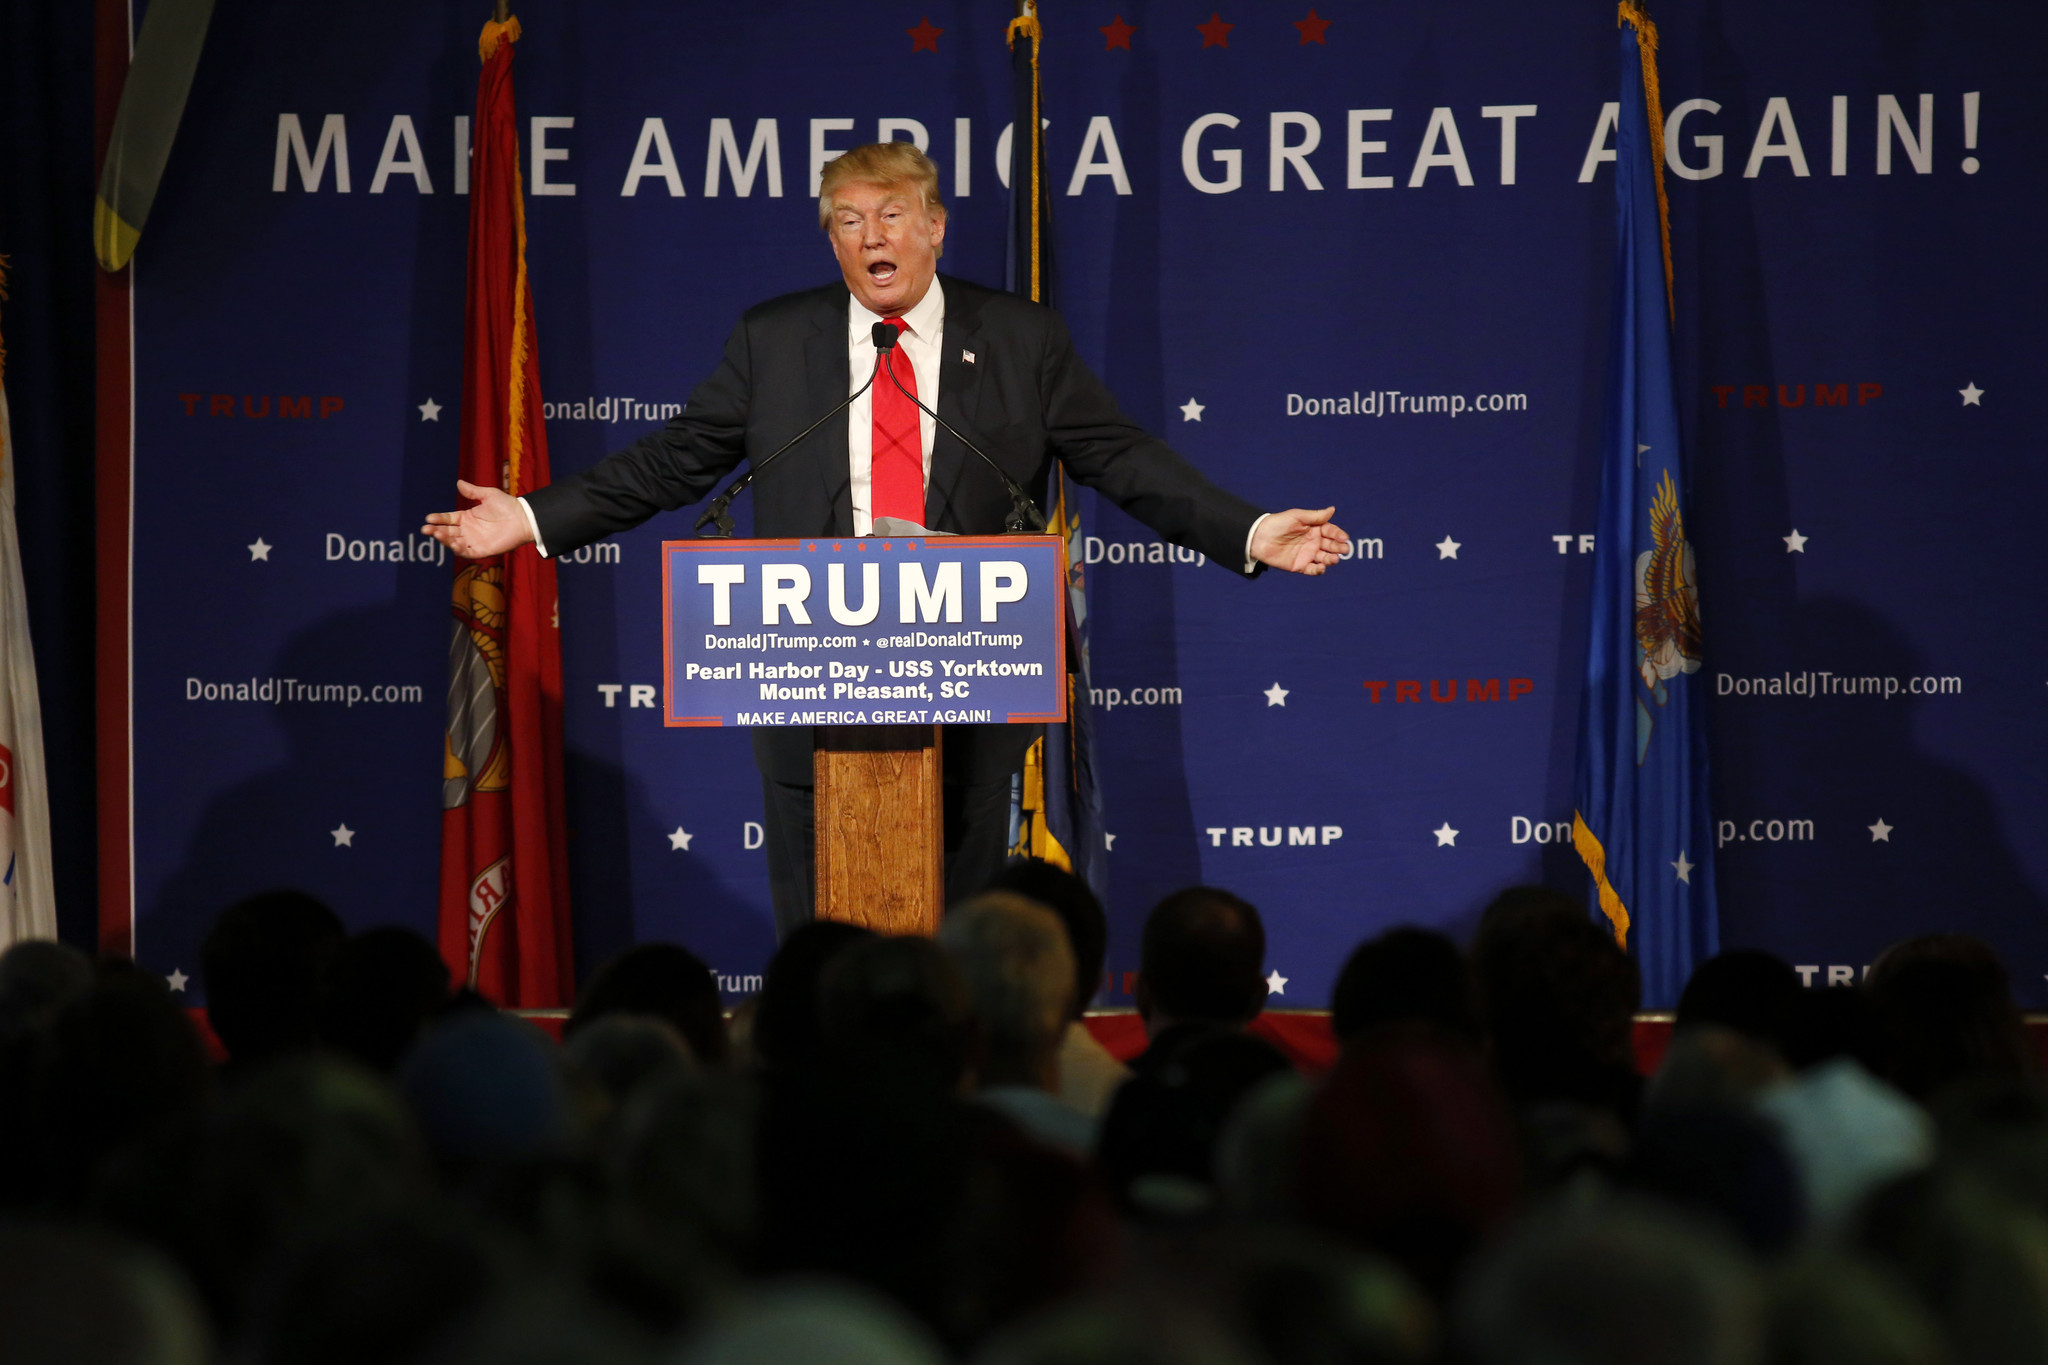 Along with Trump's rhetoric, the stakes for 2016 have risen dramatically